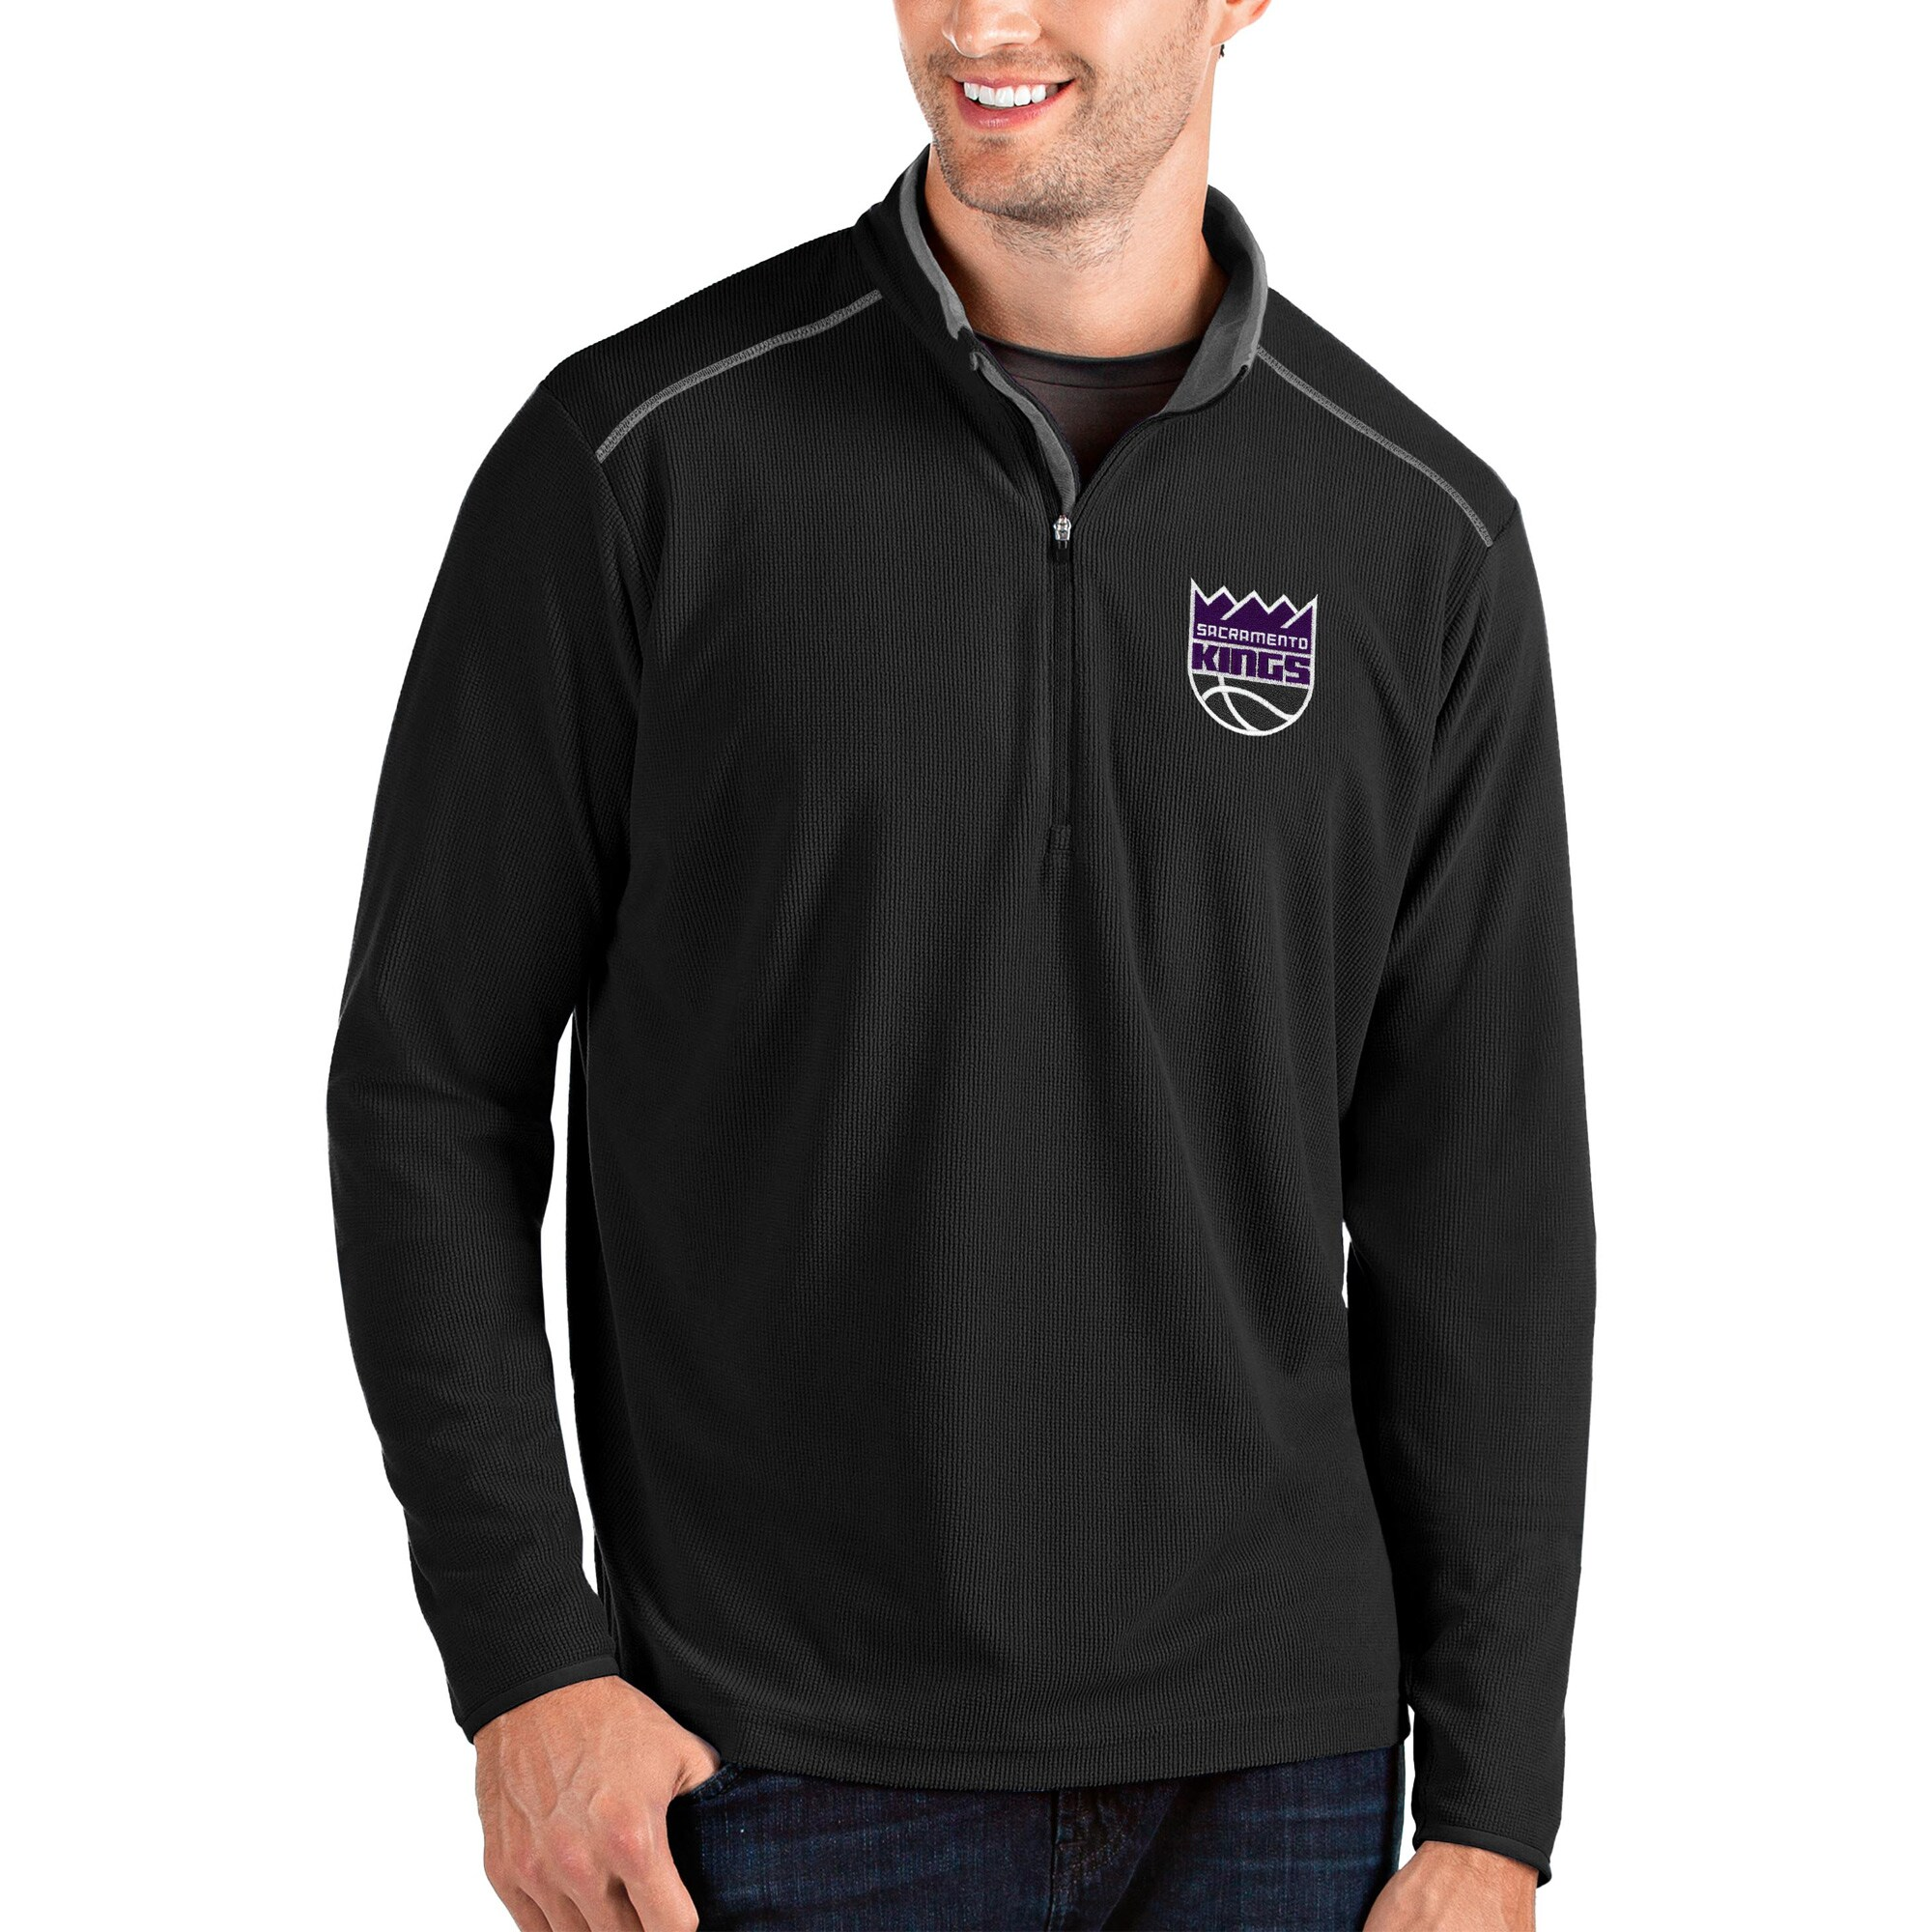 Sacramento Kings Antigua Glacier Quarter-Zip Pullover Jacket - Black/Gray